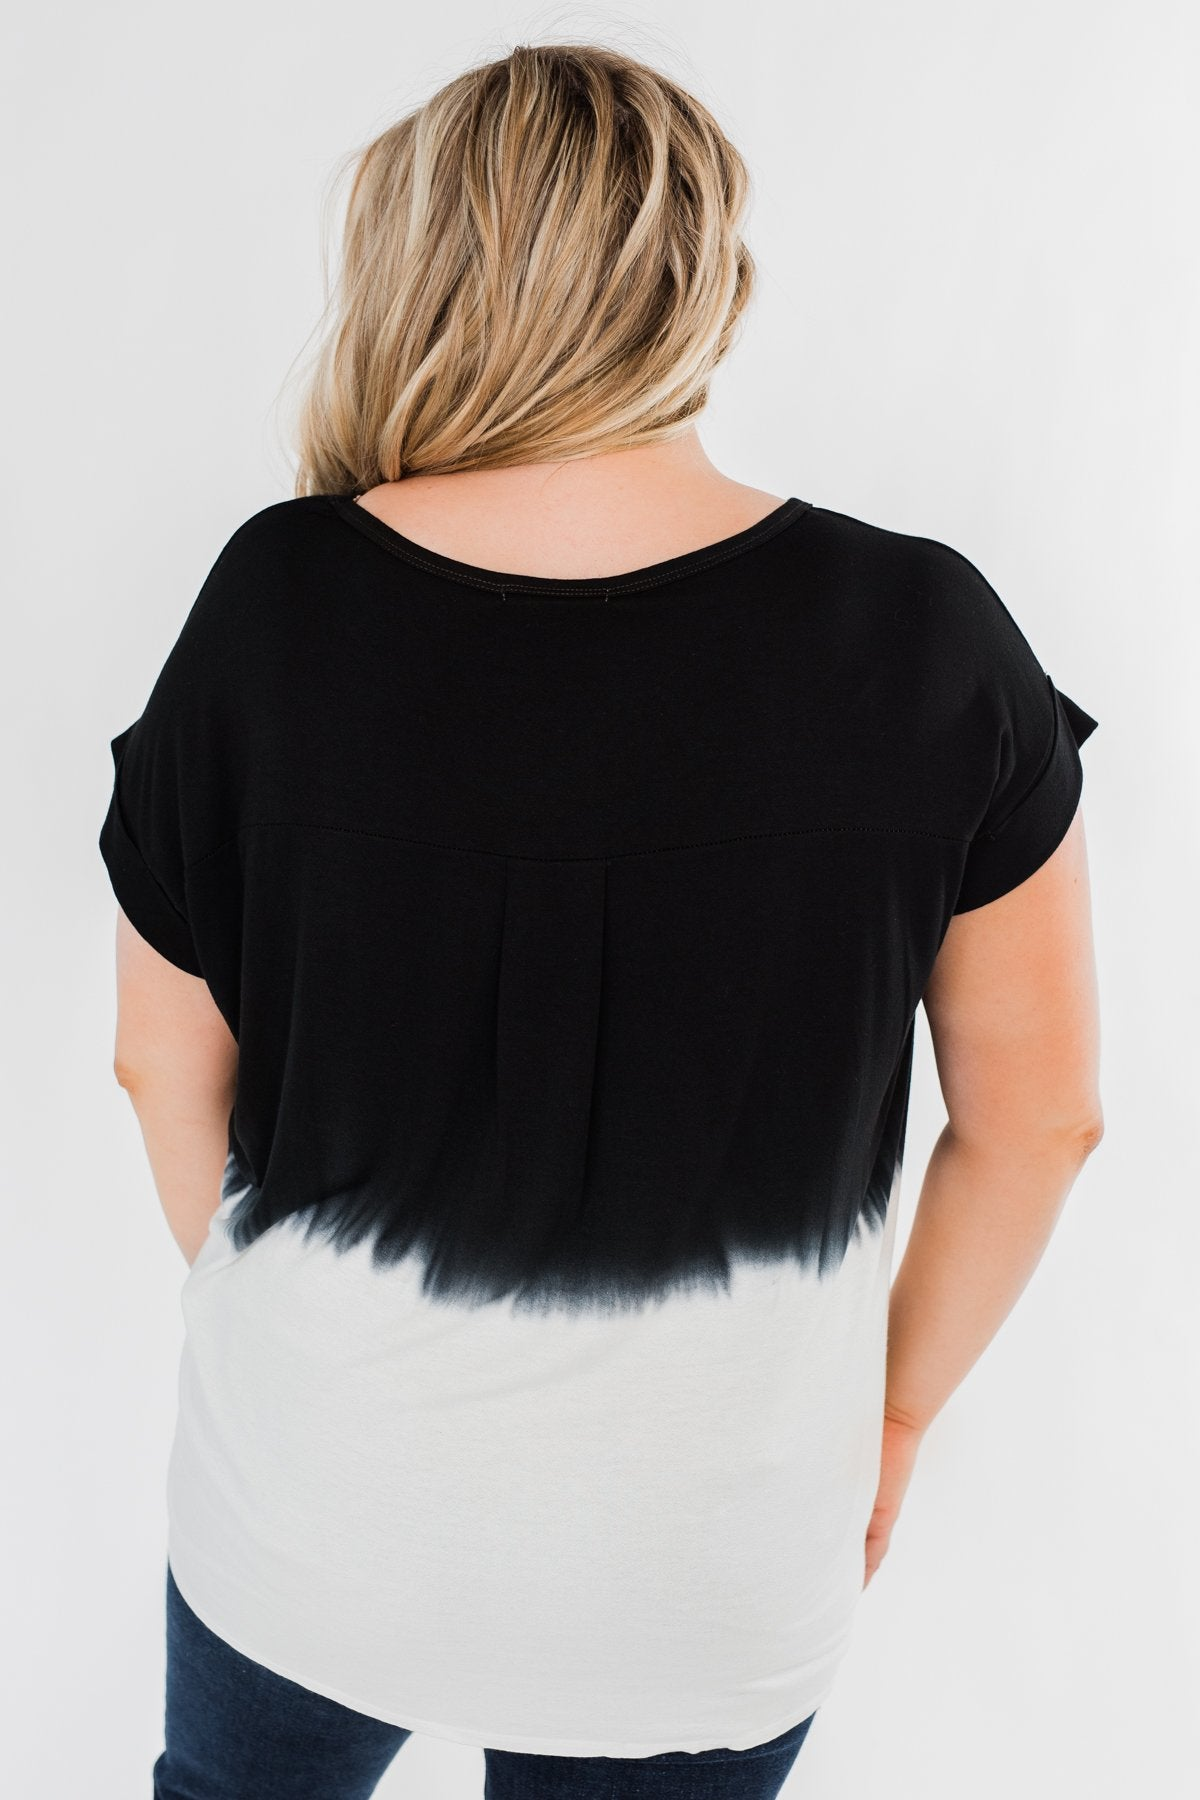 Leave You With A Smile Ombre Top- Black & Ivory